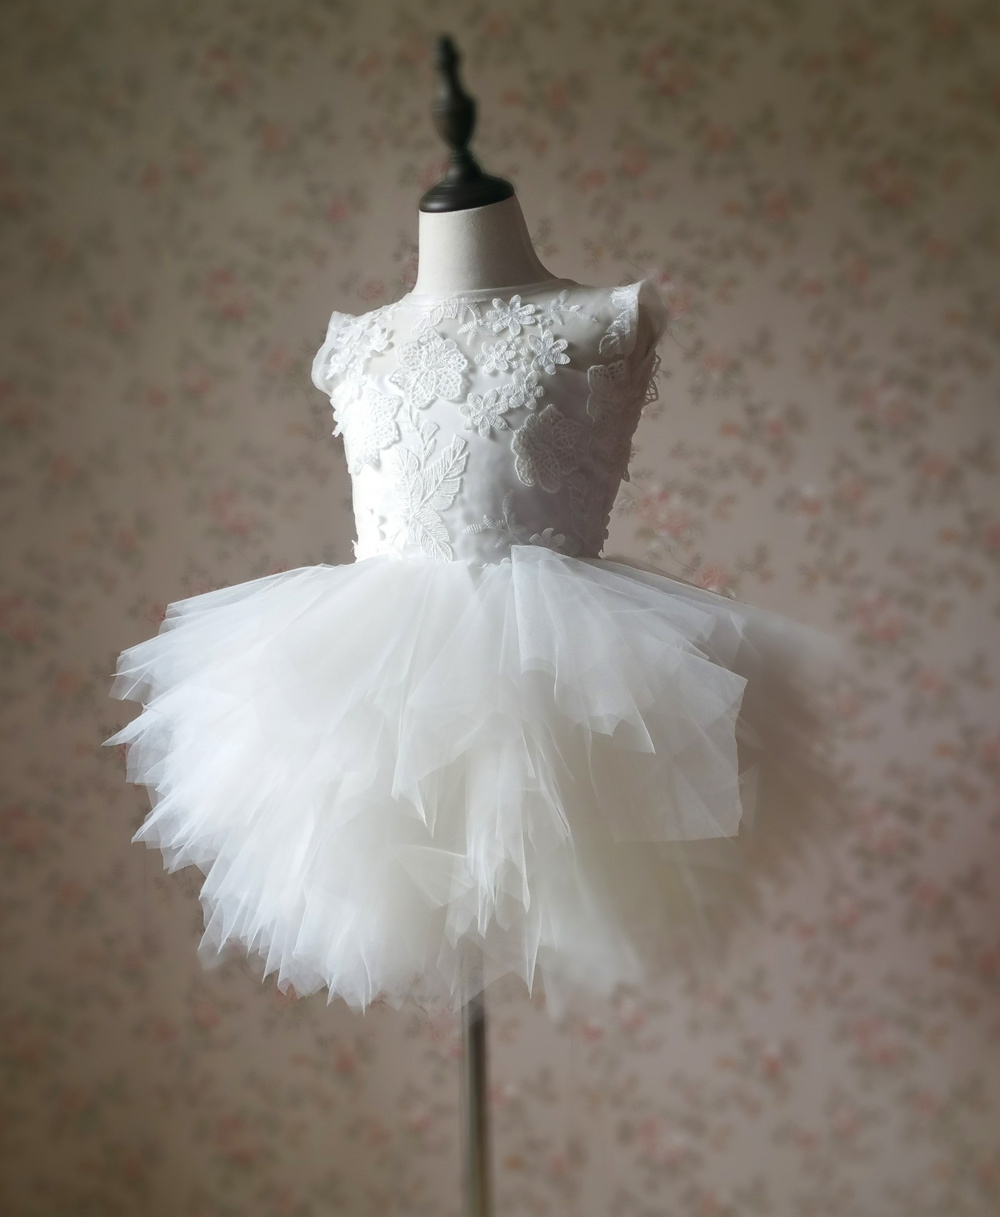 WHITE Lace Tutu High Waist Dress White Knee Length Wedding Flower Girl Dress NWT